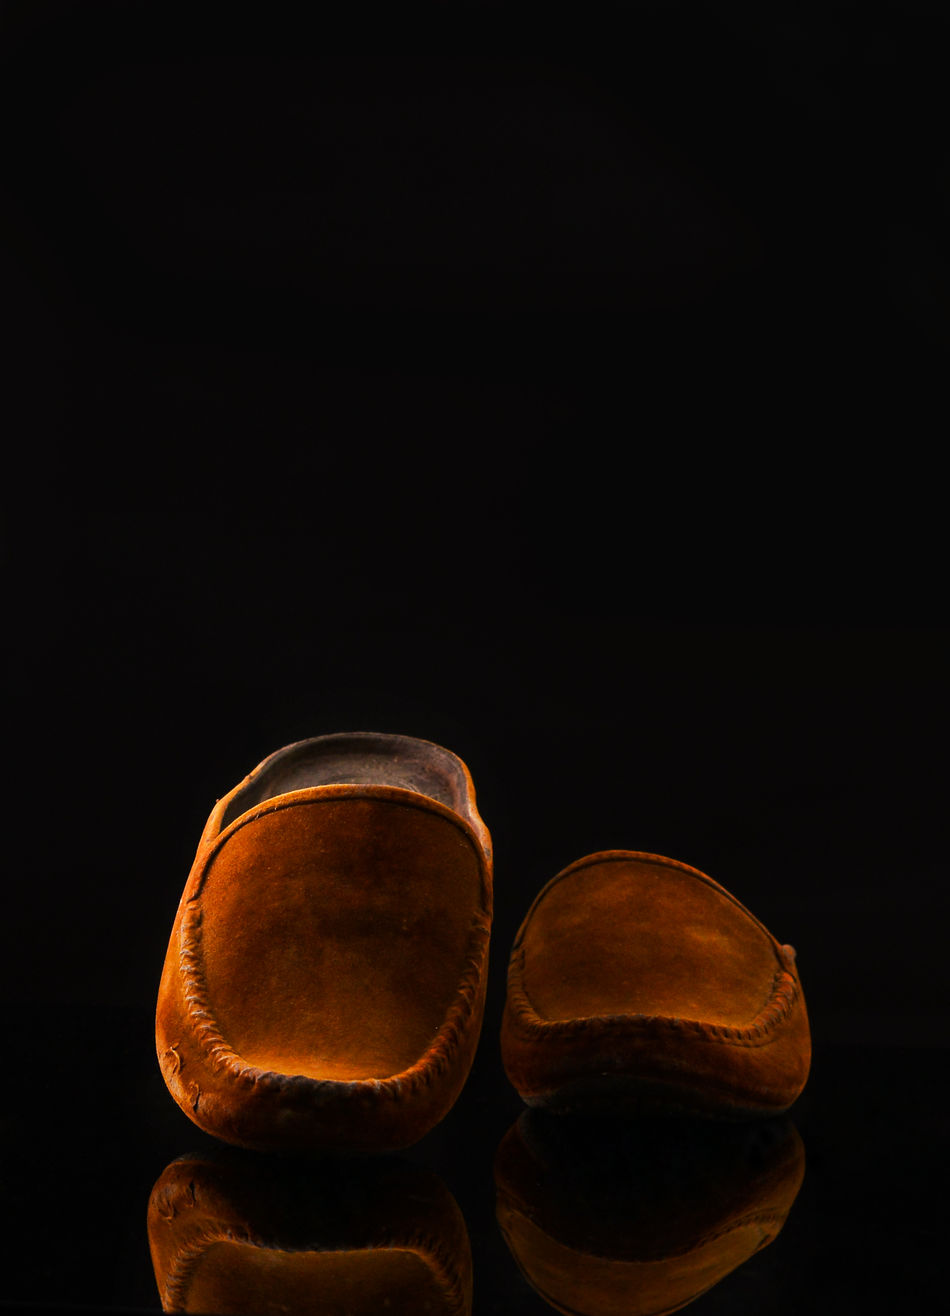 Black Background Brown Leather Shoes Shoes Studio Shot